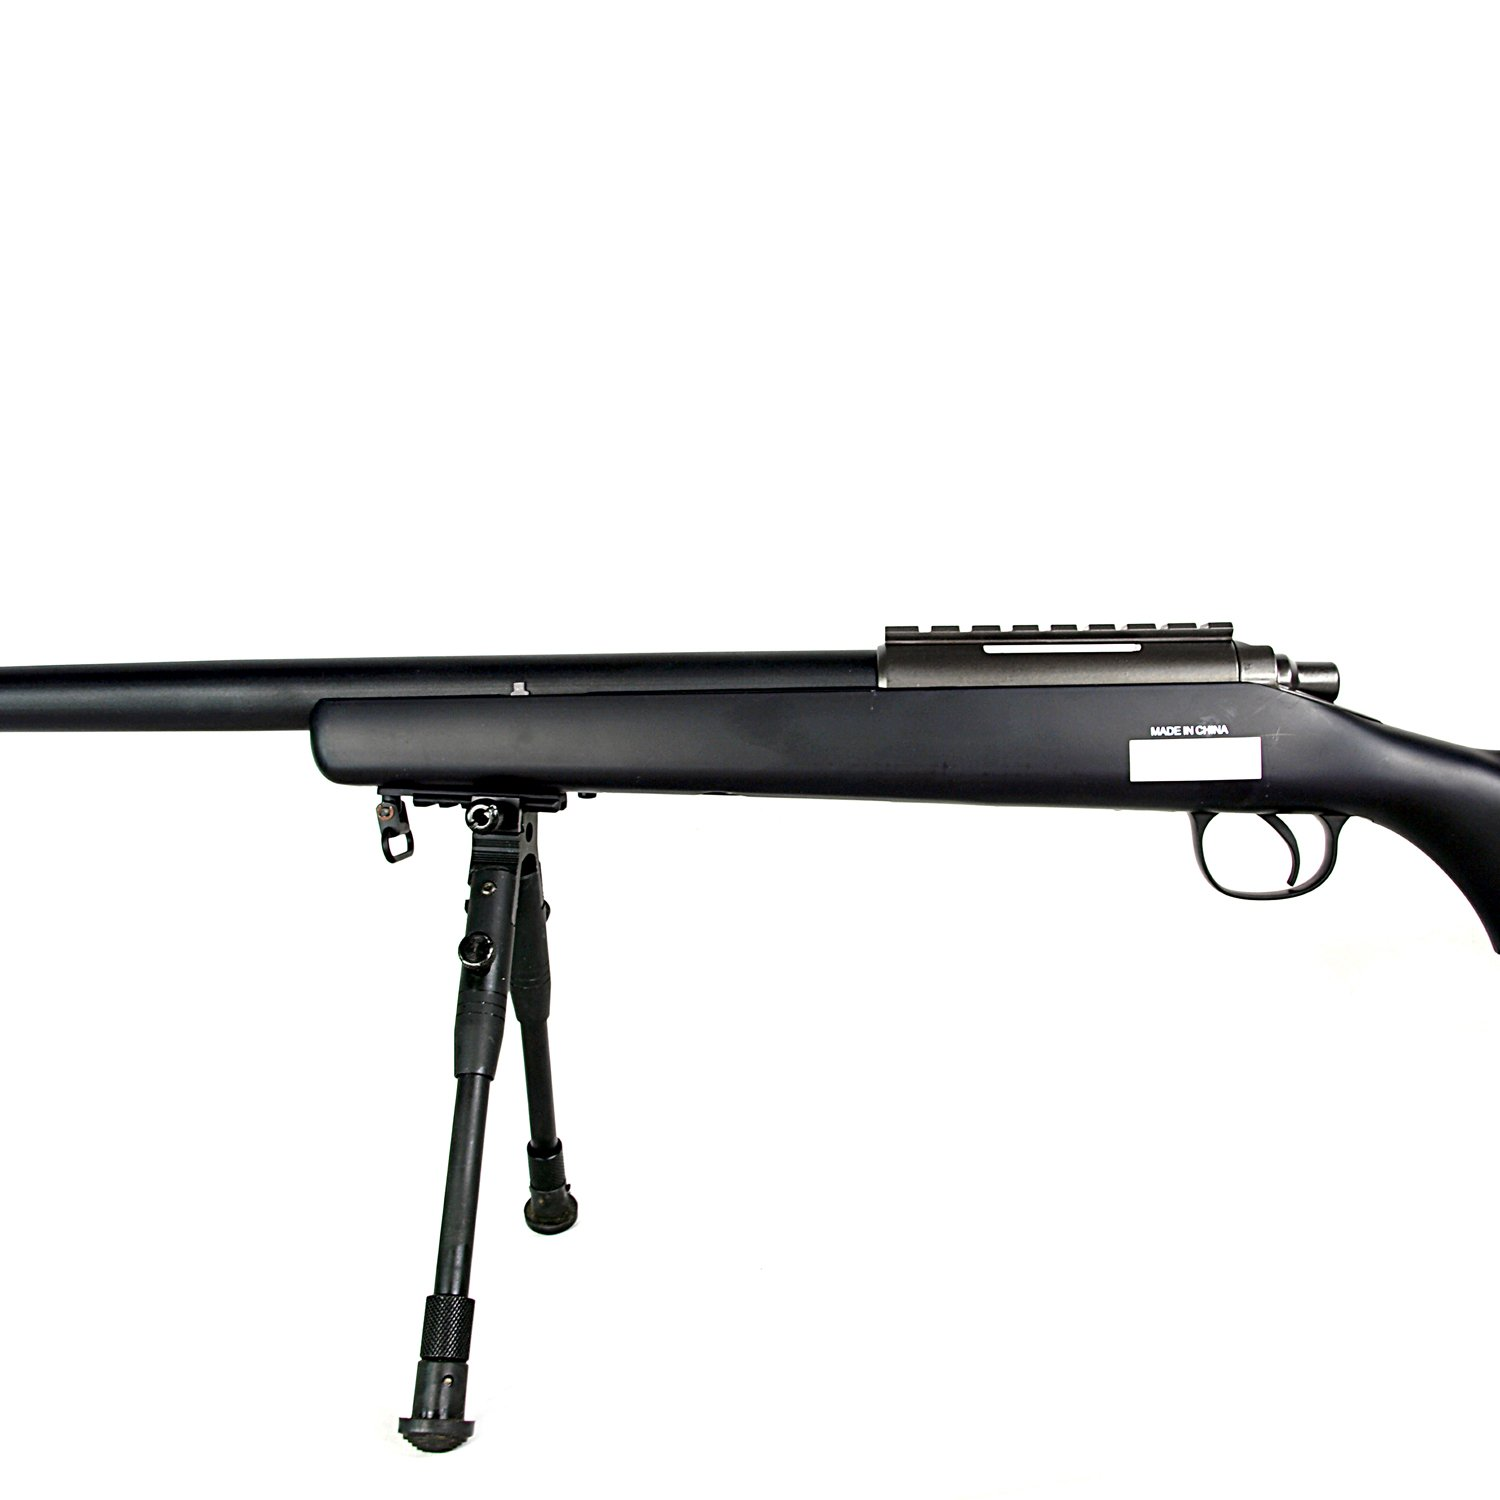 BBTac Airsoft Sniper Rifle VSR-10 - Bolt Action Powerful Spring Airsoft Gun with Hunting Scope and Bipod